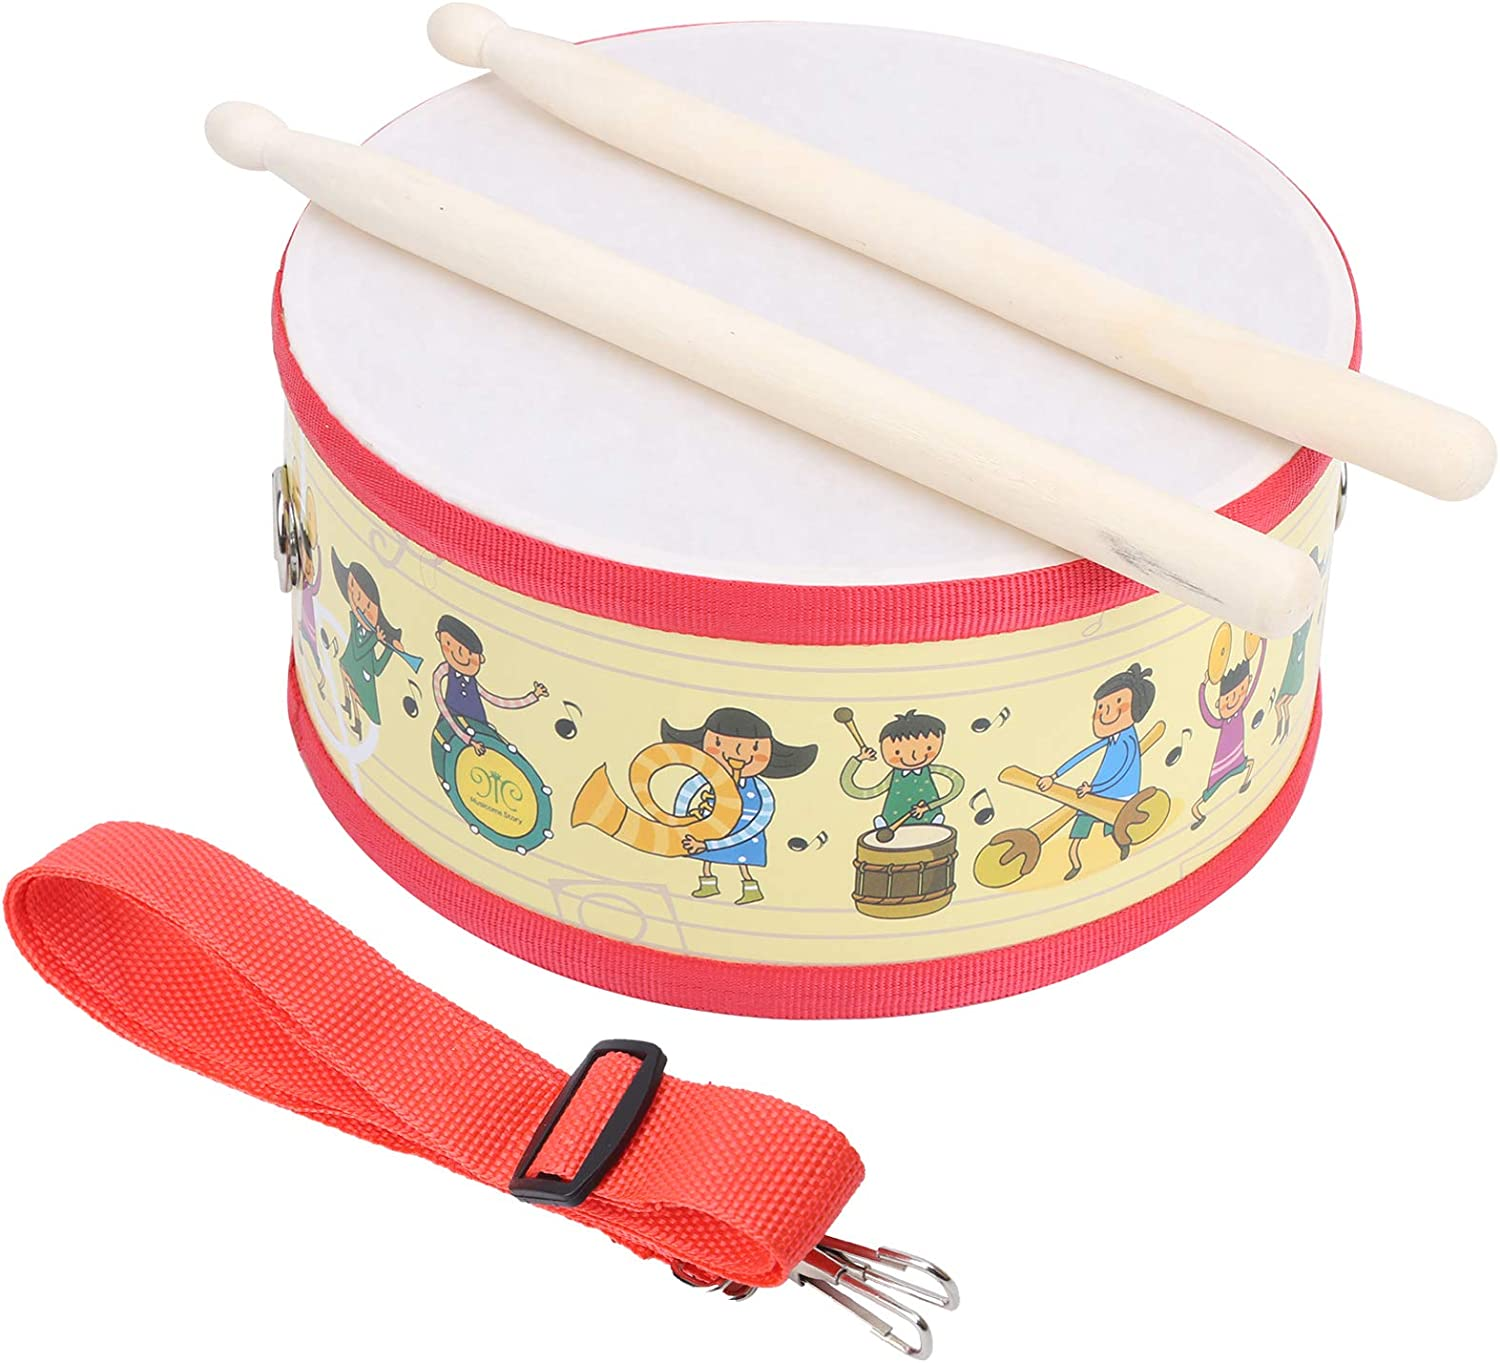 Wood Drum Kid Easy-to-use Hand Set Wooden Clearance SALE Limited time Par Side Beat Double KTV for